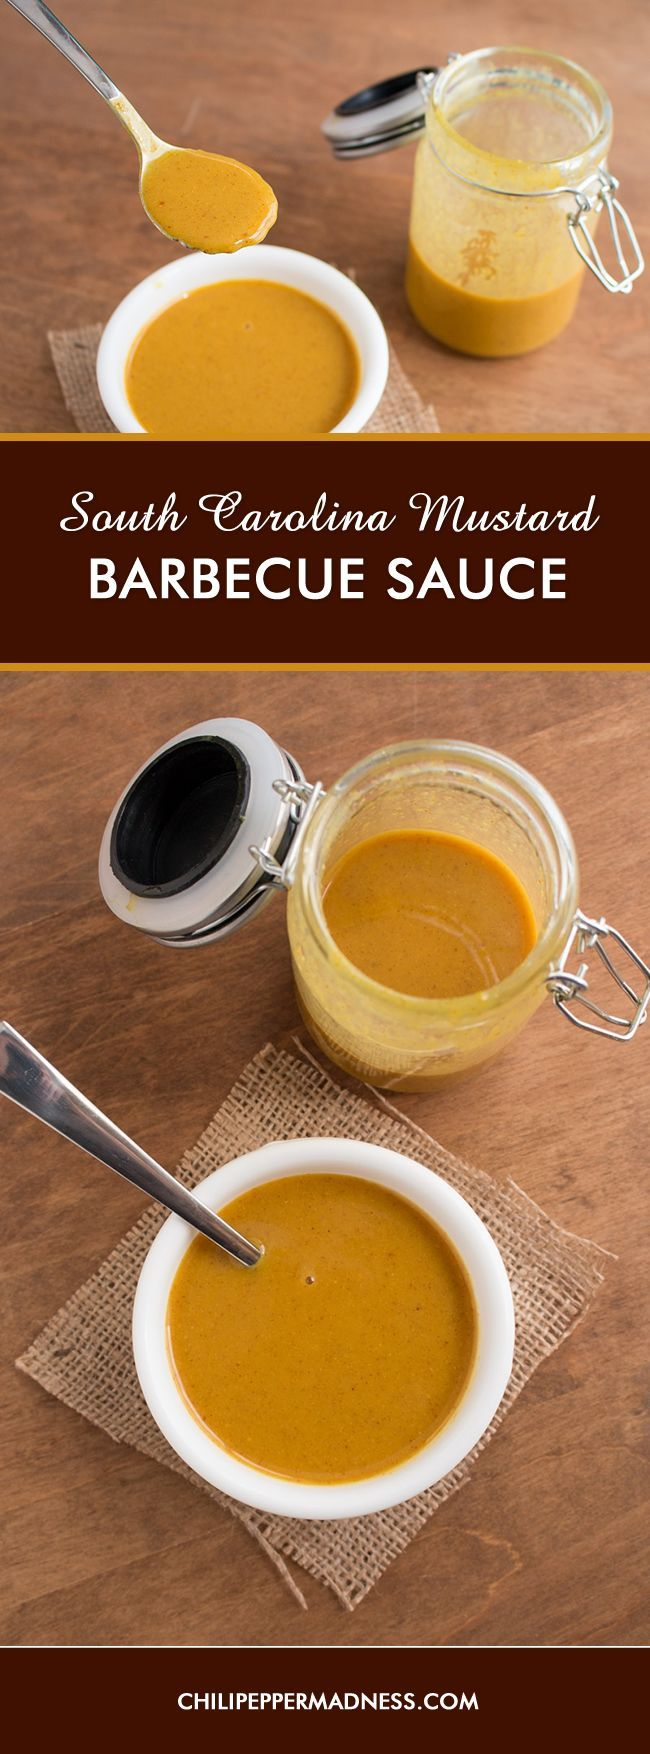 ... bbq sauces sauce recipes barbecue grill south carolina smokers forward